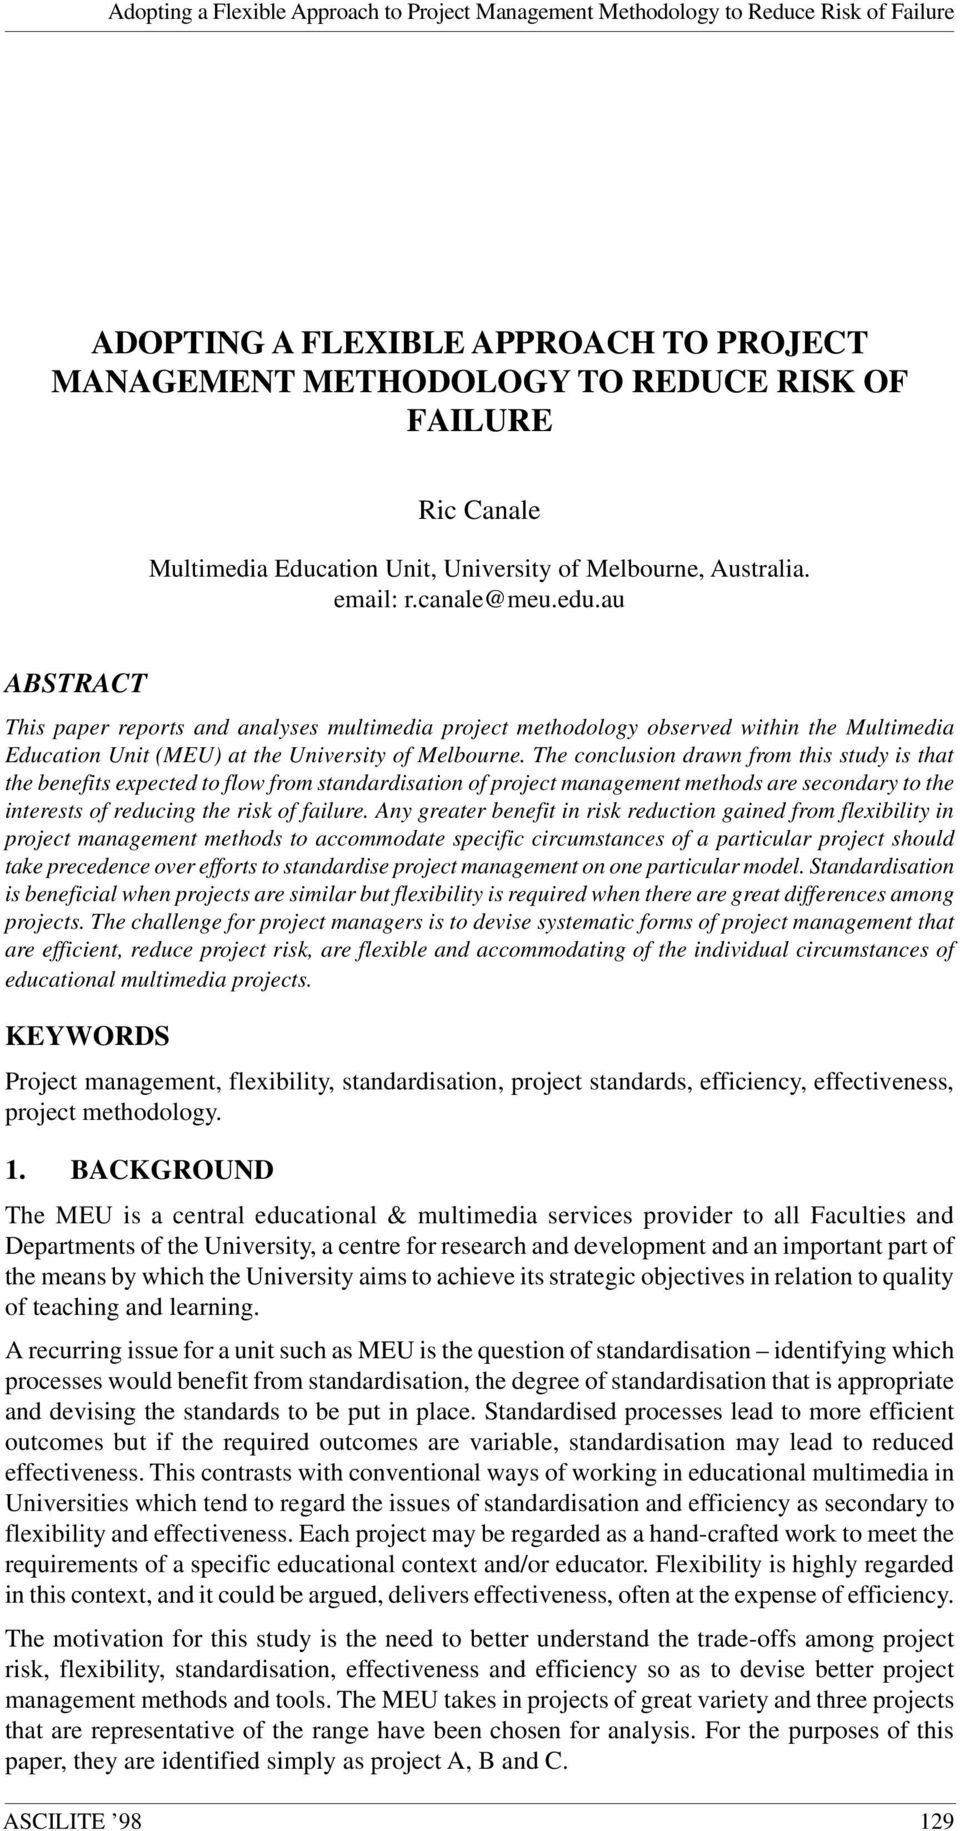 au ABSTRACT This paper reports and analyses multimedia project methodology observed within the Multimedia Education Unit (MEU) at the University of Melbourne.